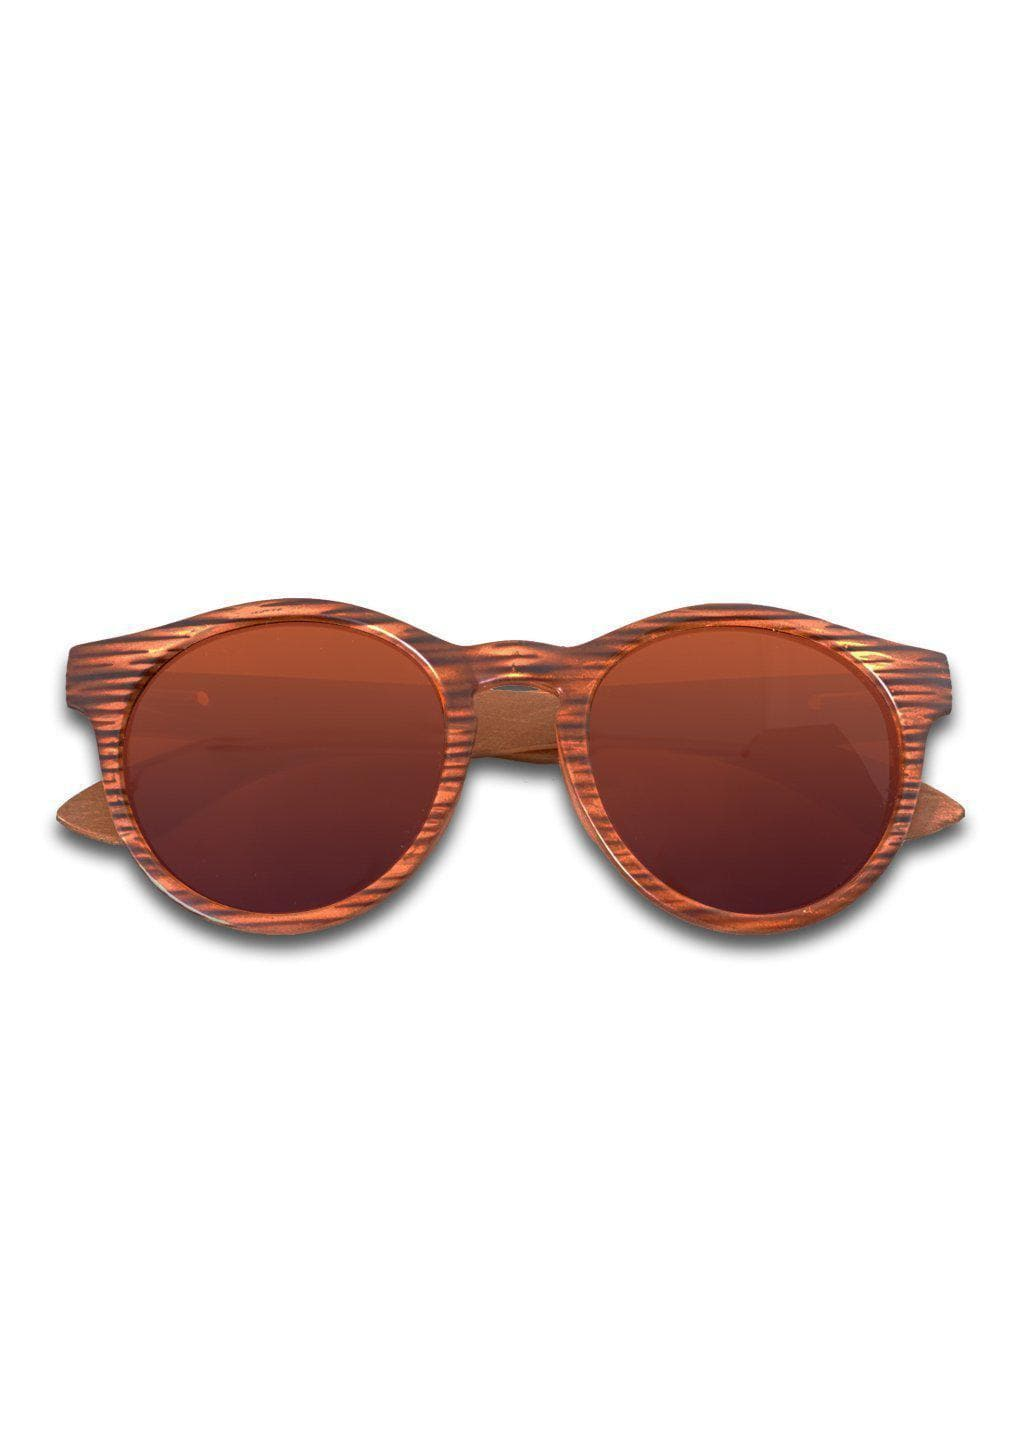 Eyewood Round - Dominique - Wooden sunglasses with round frame in brown with brown lenses. Really beautiful.